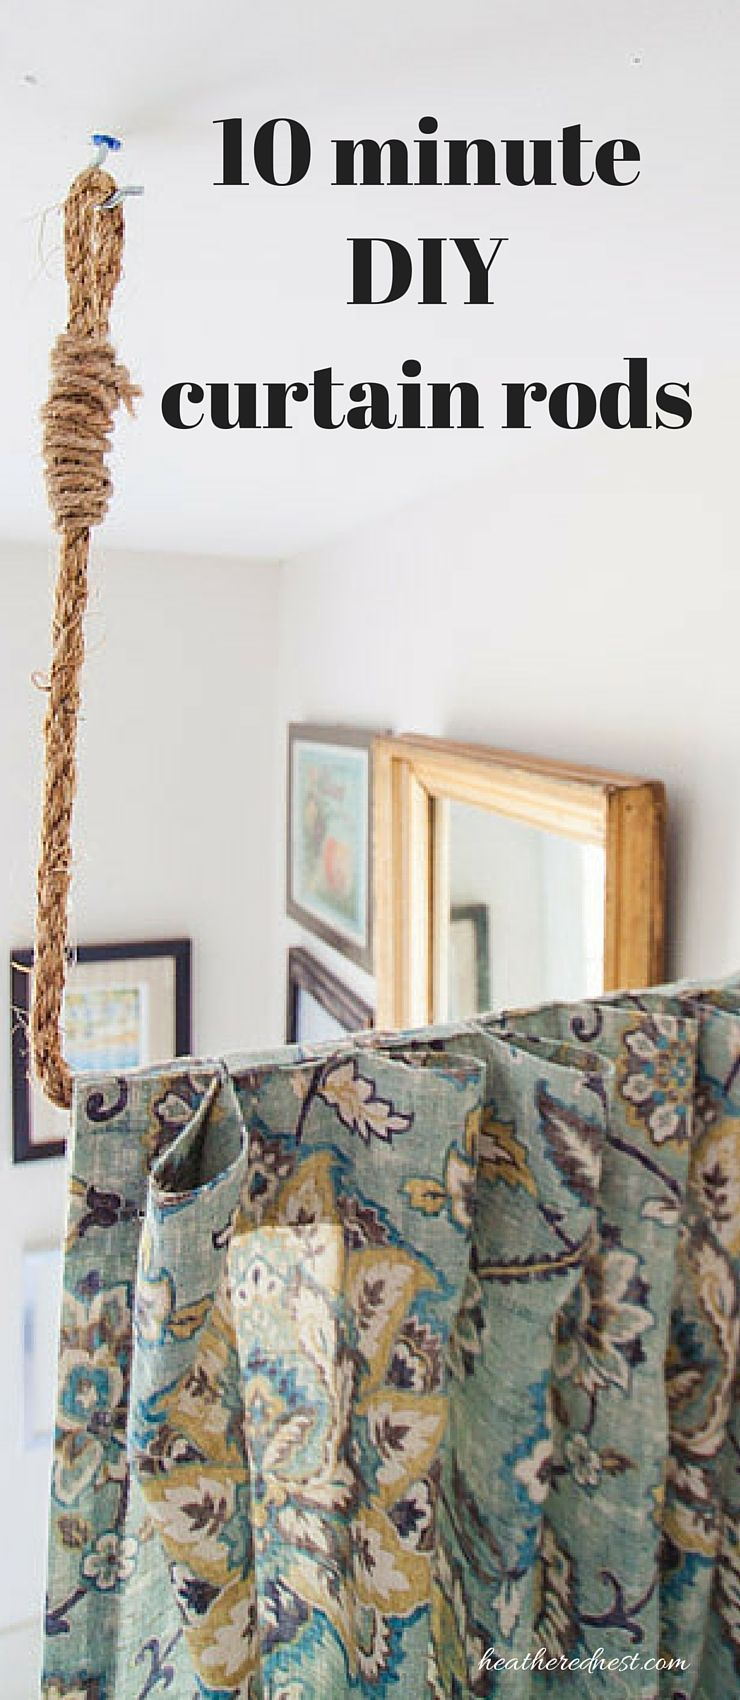 Pipe Dreams. AKA Build a DIY Curtain Rod in 10 minutes | Pinterest ...